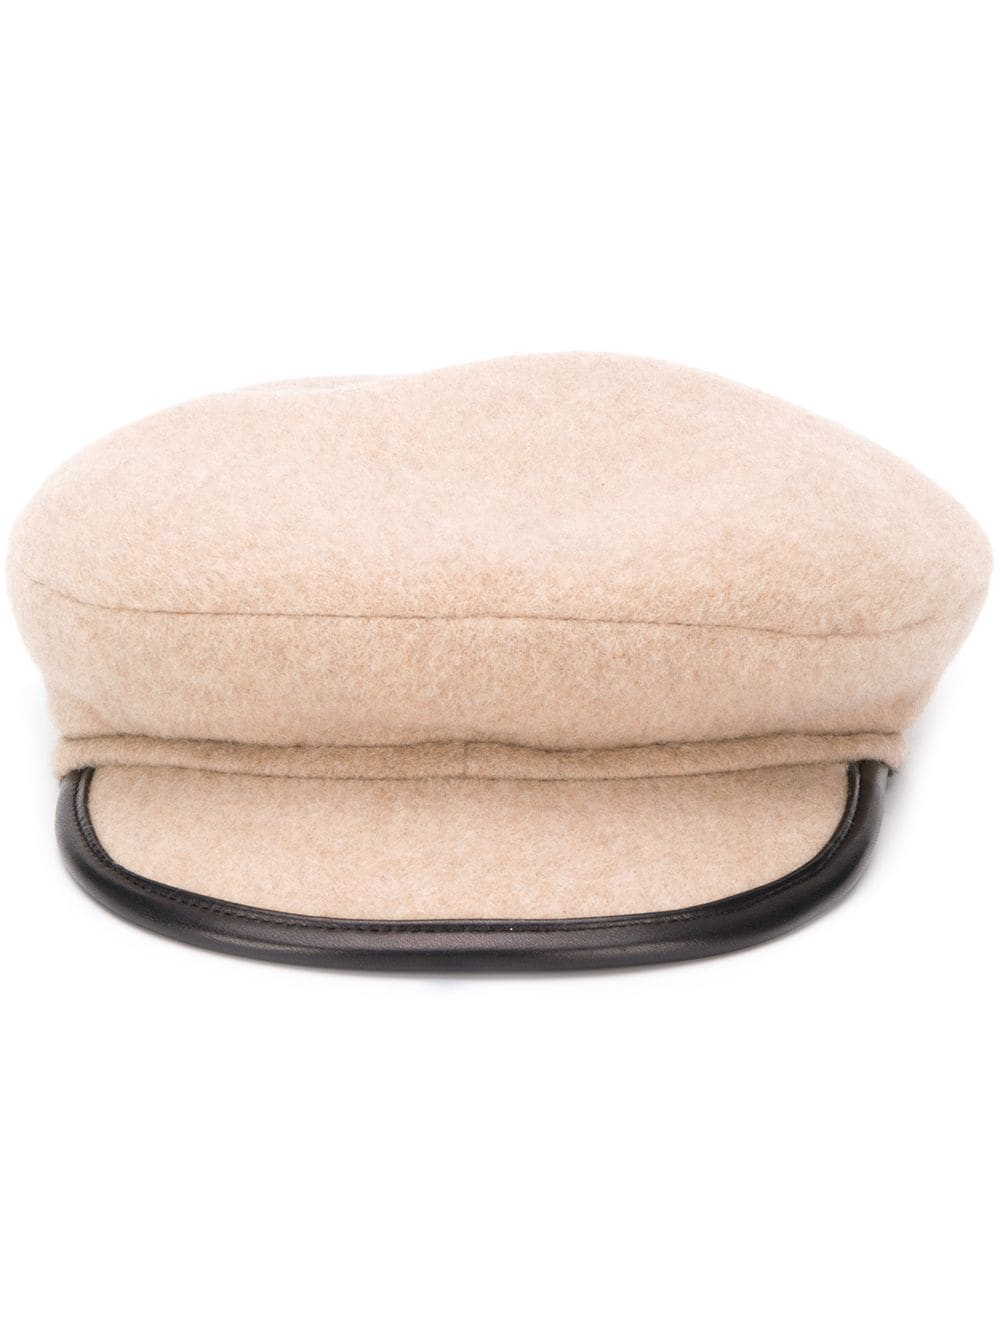 BILLY SOFT VIZOR HAT 19PF CASHMERE